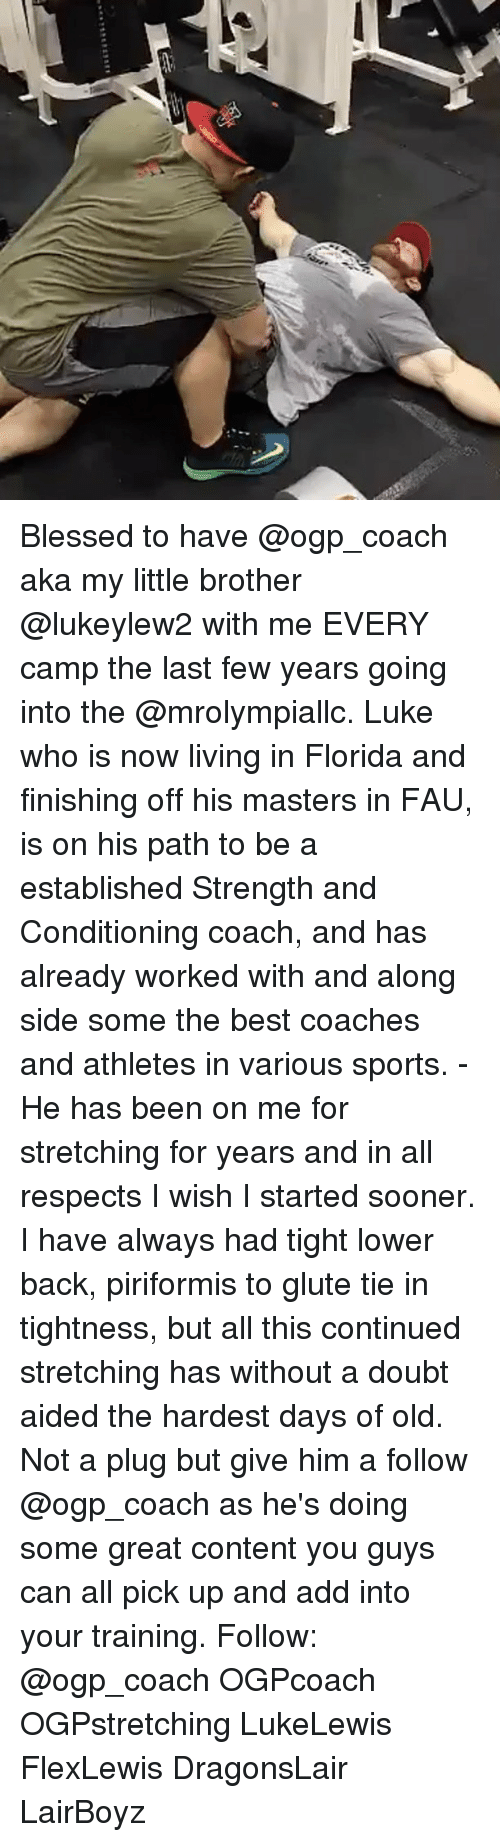 last-few-years: Blessed to have @ogp_coach aka my little brother @lukeylew2 with me EVERY camp the last few years going into the @mrolympiallc. Luke who is now living in Florida and finishing off his masters in FAU, is on his path to be a established Strength and Conditioning coach, and has already worked with and along side some the best coaches and athletes in various sports. - He has been on me for stretching for years and in all respects I wish I started sooner. I have always had tight lower back, piriformis to glute tie in tightness, but all this continued stretching has without a doubt aided the hardest days of old. Not a plug but give him a follow @ogp_coach as he's doing some great content you guys can all pick up and add into your training. Follow: @ogp_coach OGPcoach OGPstretching LukeLewis FlexLewis DragonsLair LairBoyz